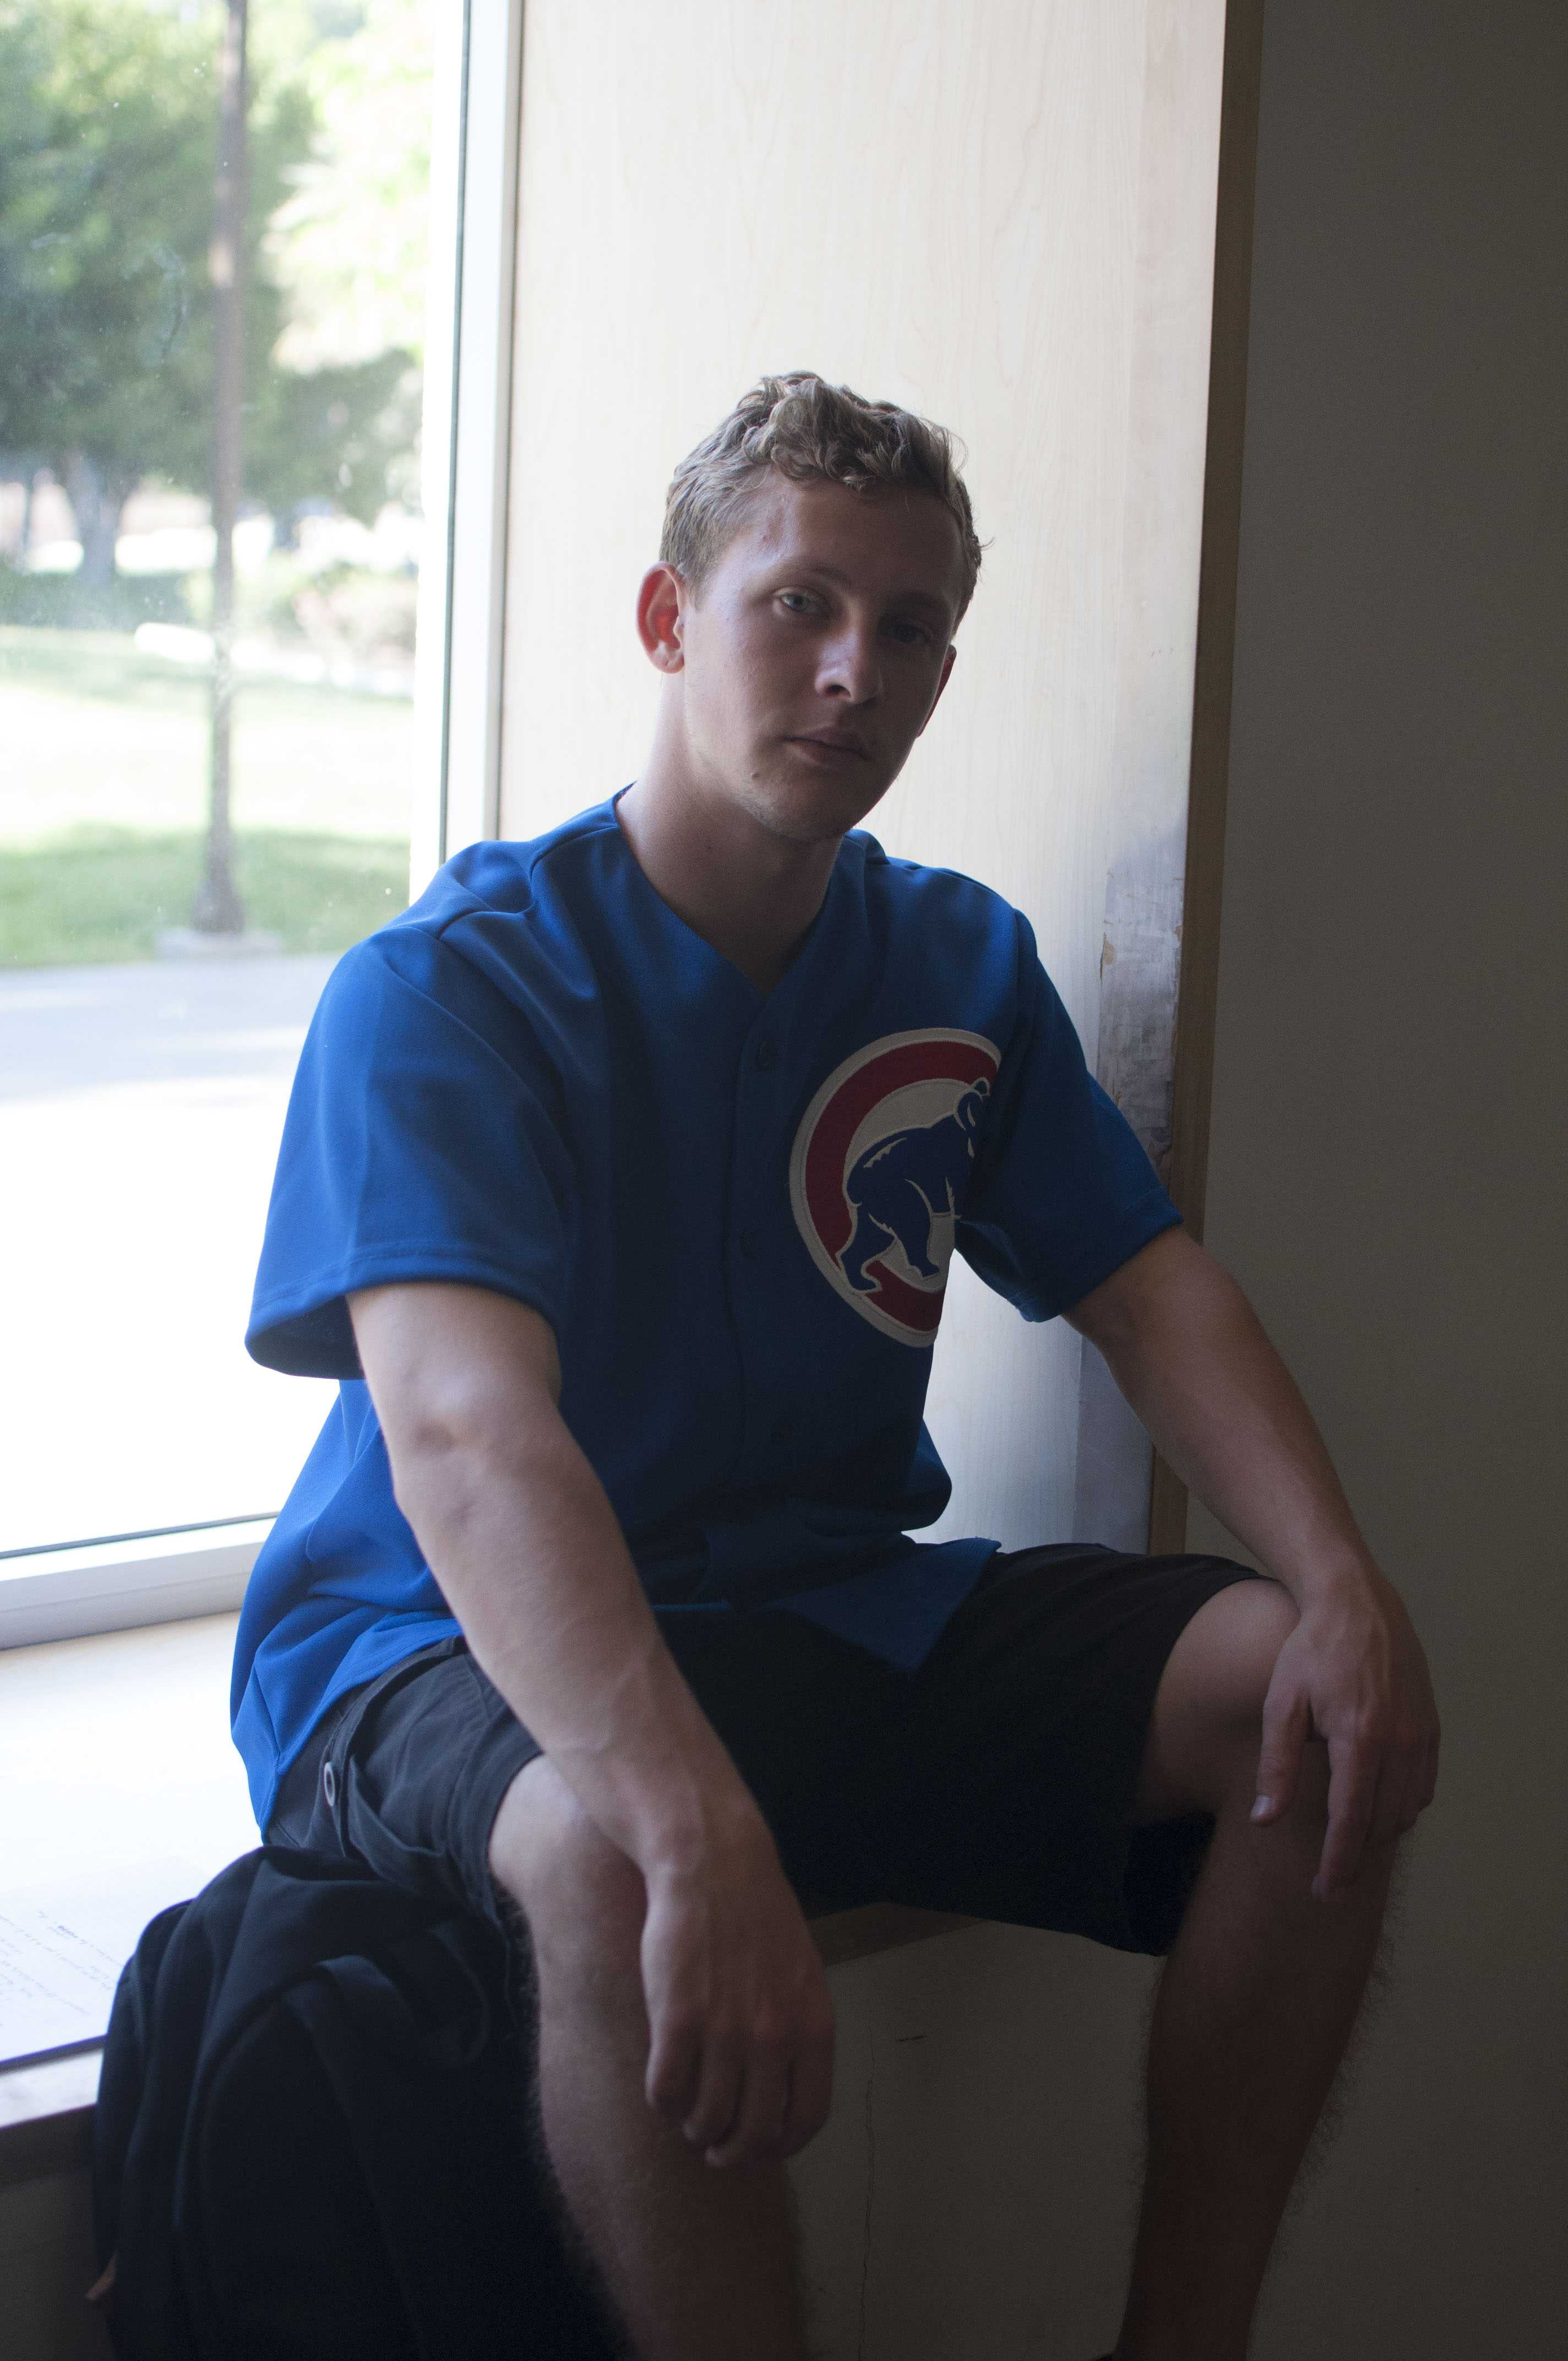 Max+Brichta%2C+junior+communication+studies%2C+sports+a+Chicago+Cubs+shirt%2C+a+gift+from+a+friend.+Brichta+says+he+wears+the+shirt+because+of+three+things.+%22One+-+acknowledge+the+gift%2C+acknowledge+the+giver.+Two+-+there%27s+no+name+so+I%27m+no+affiliating+it+with+anyone.+Three+-+blue+is+my+favorite+color.%22